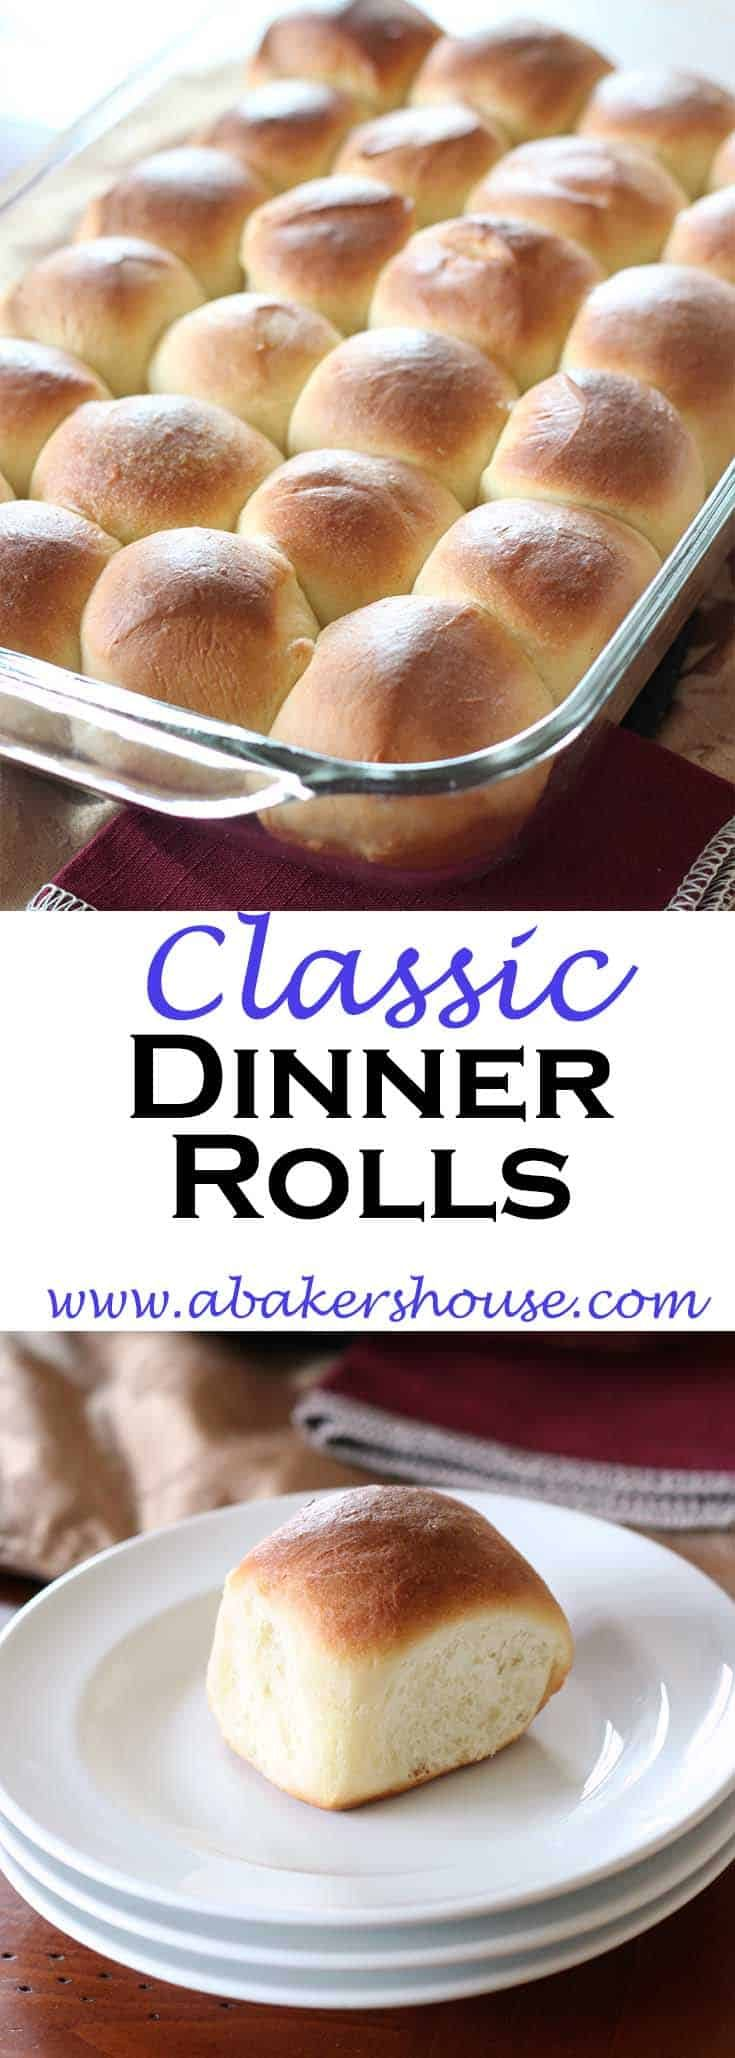 Classic dinner rolls are the perfect accompaniment to many a family feast. This recipe doesn't require fancy baking equipment; simply bake the rolls in a 9 by 13 baking dish. The results are fluffy and tender. #abakershouse #homemadebread #rolls #breadbuns